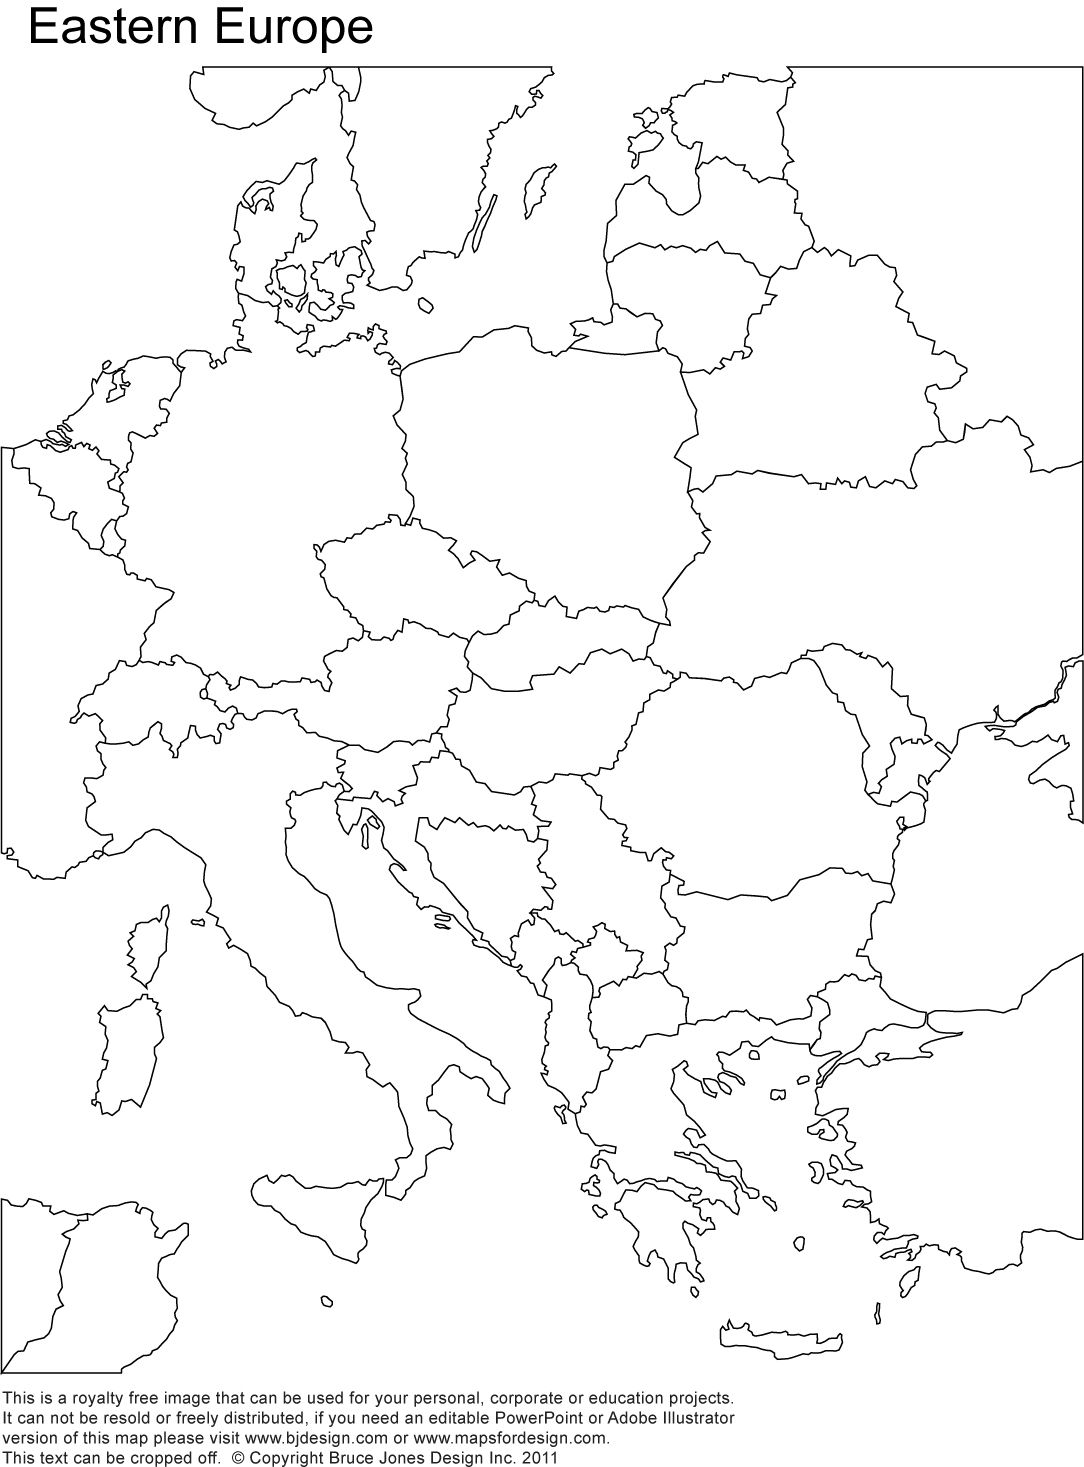 Eastern Europe Printable Blank map, royalty free, country borders ...